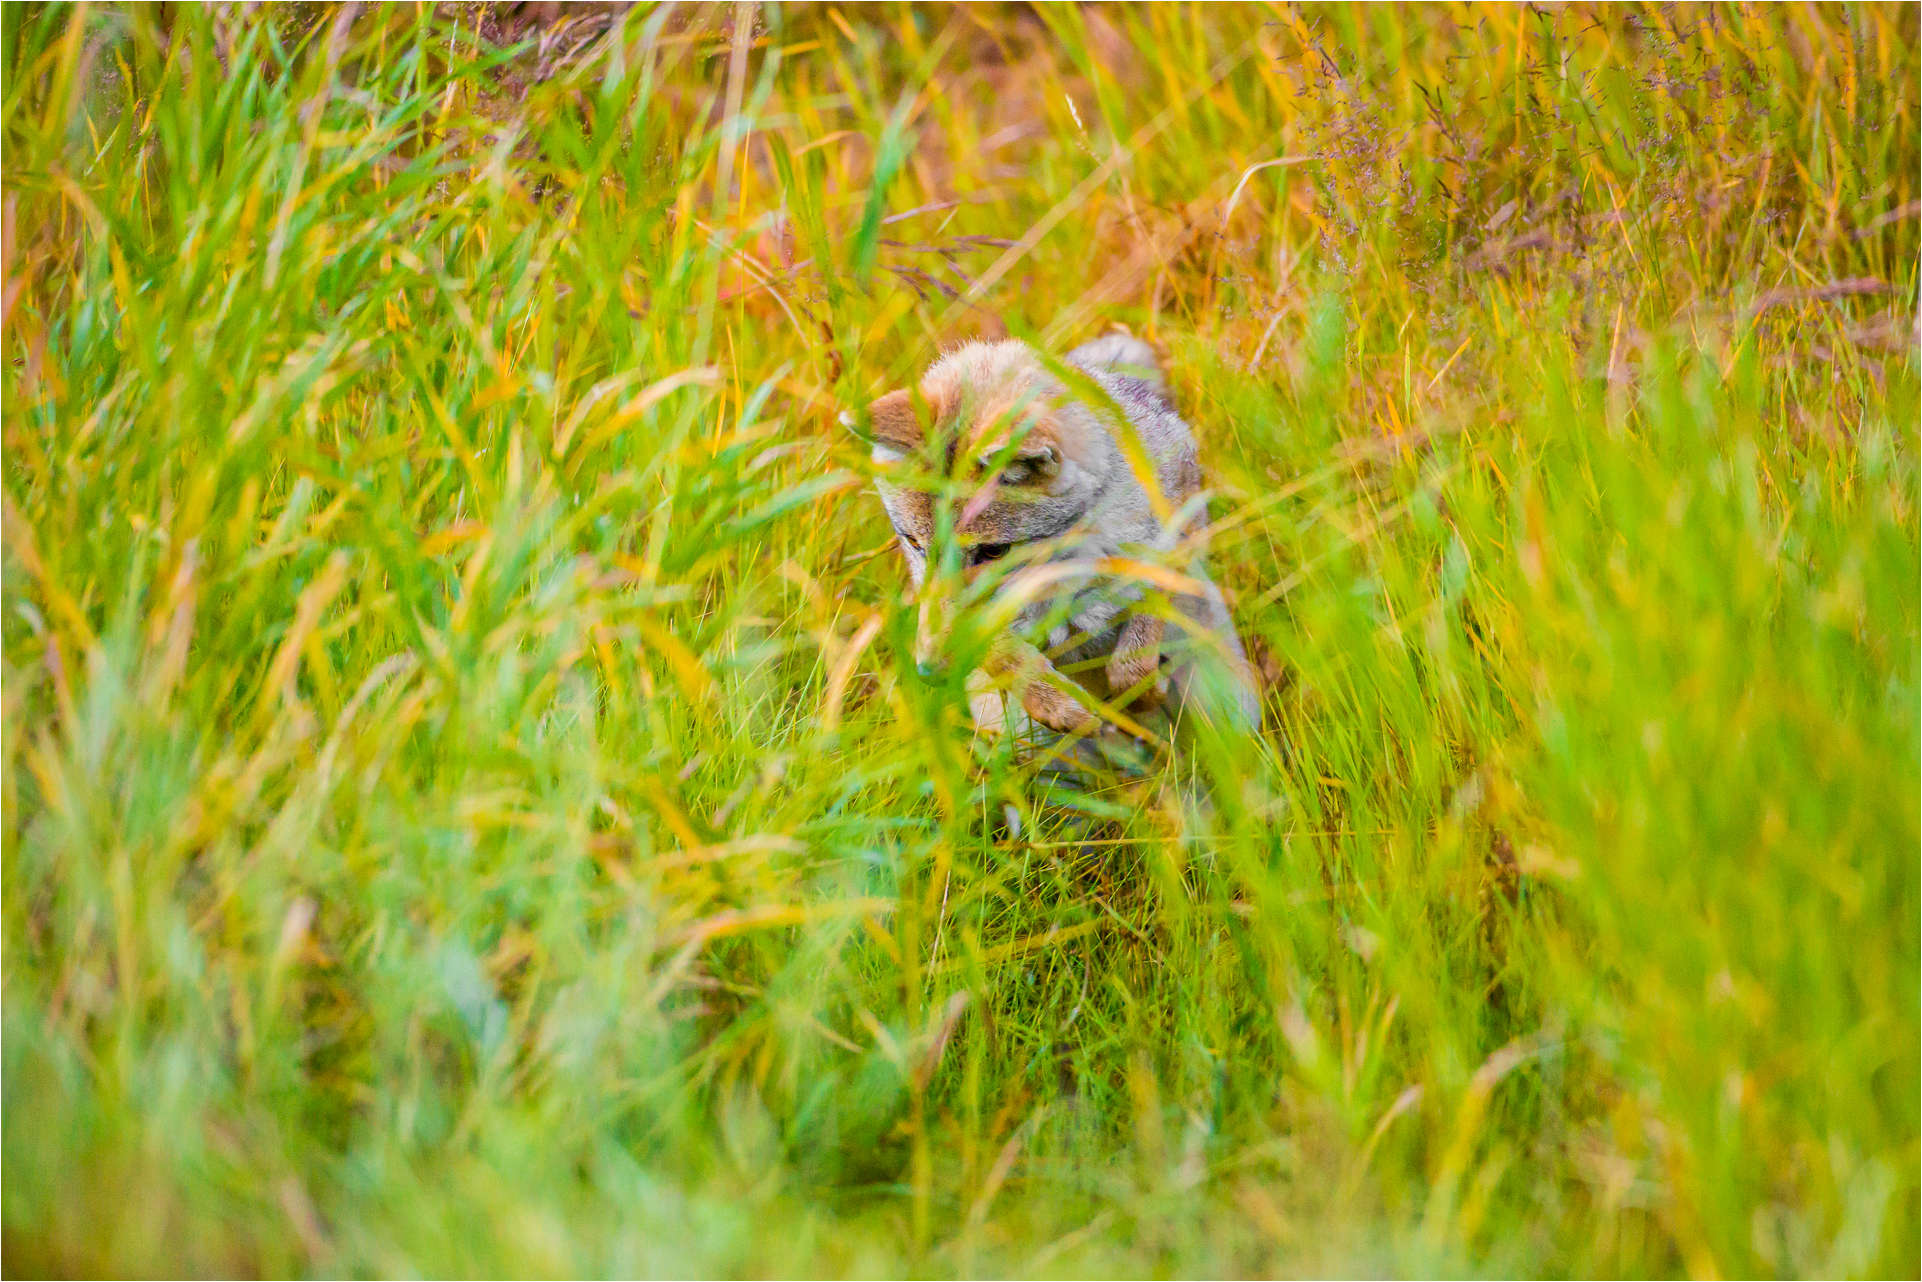 Hunting in the grass - © Christopher Martin-9706